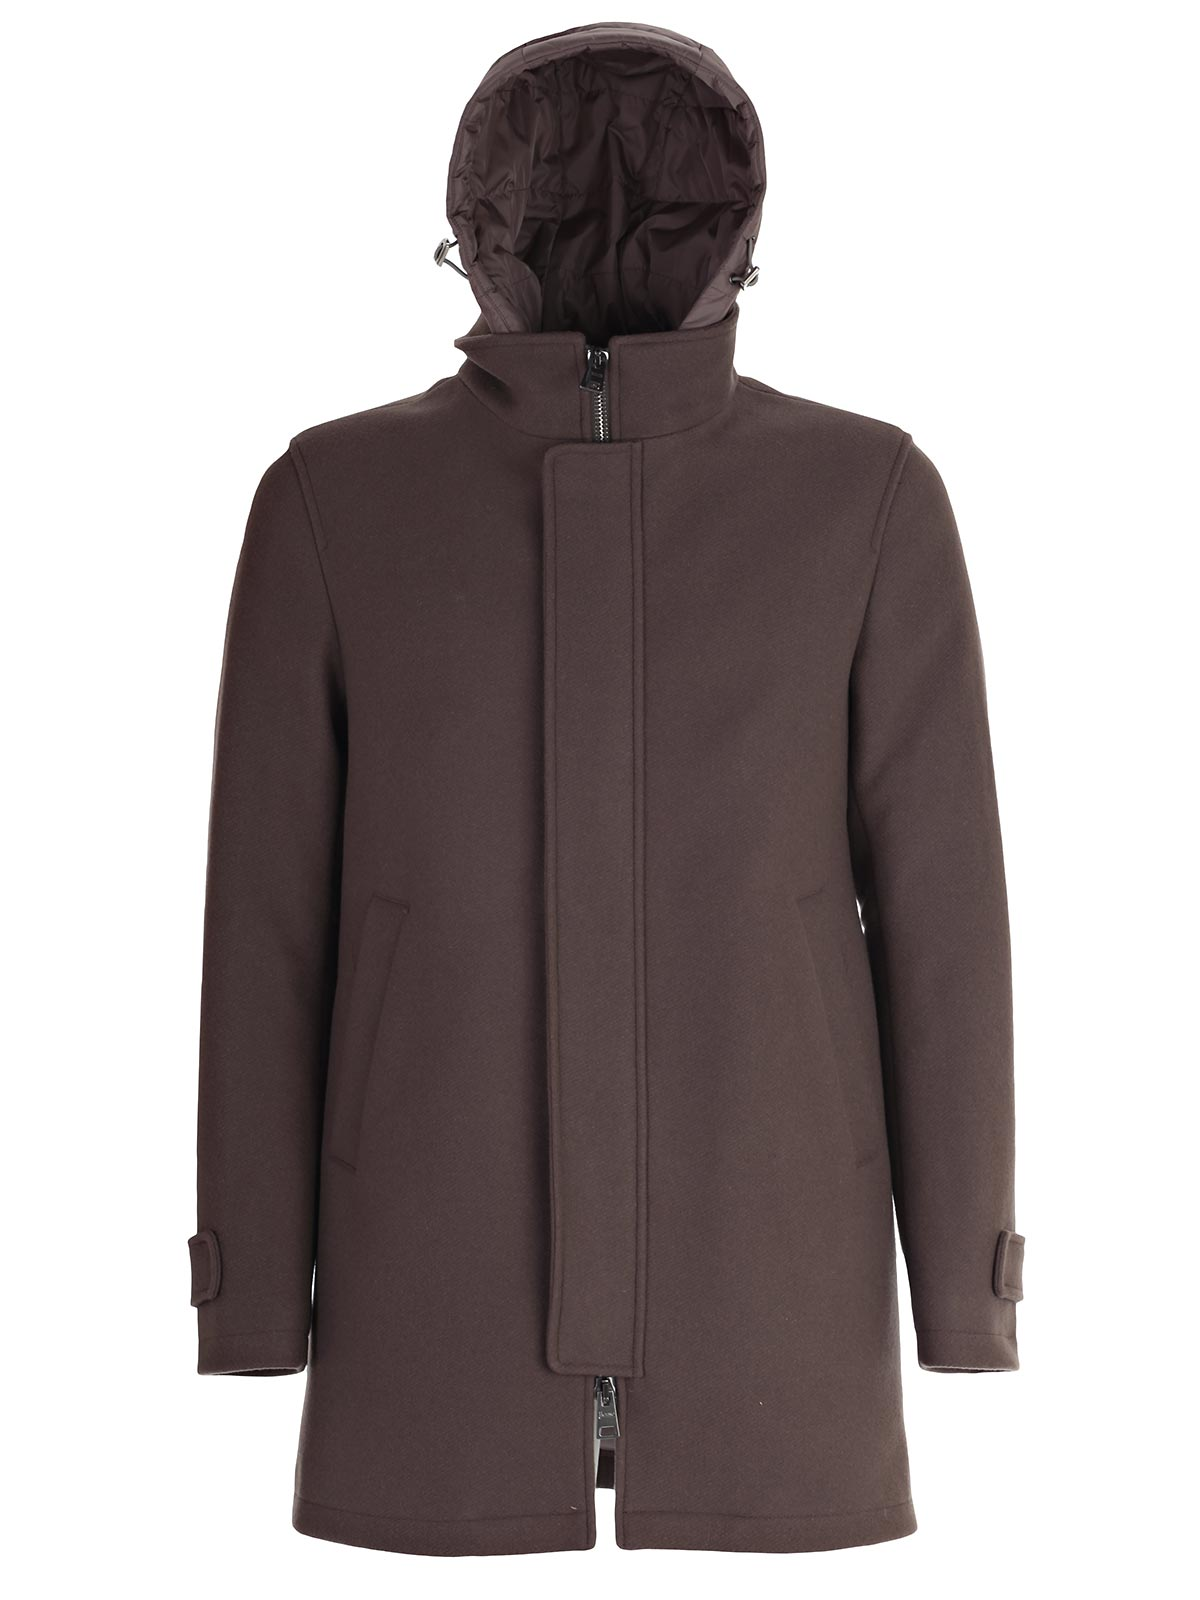 Picture of HERNO Padded Jacket CAPPOTTO C/CAPPUCCIO STACCABILE